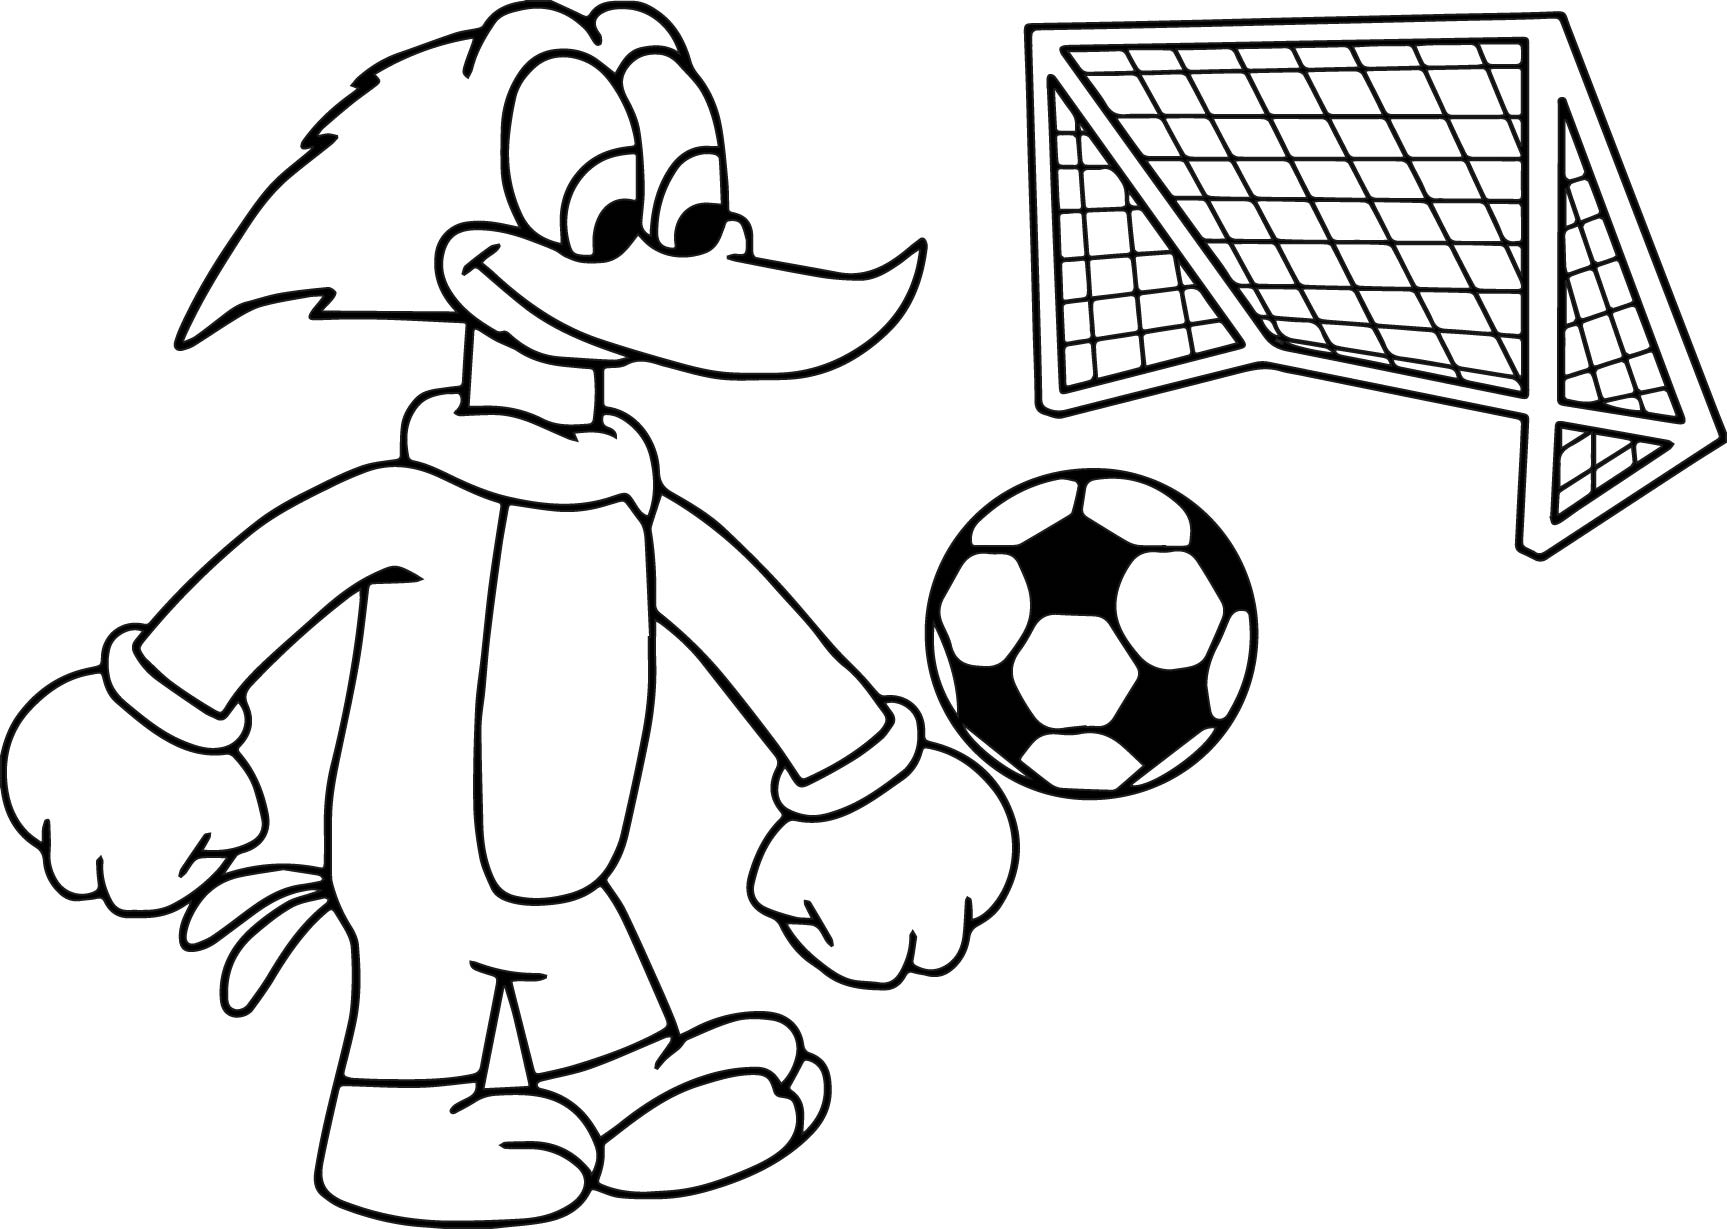 woody woodpacker play football soccer coloring page wecoloringpage